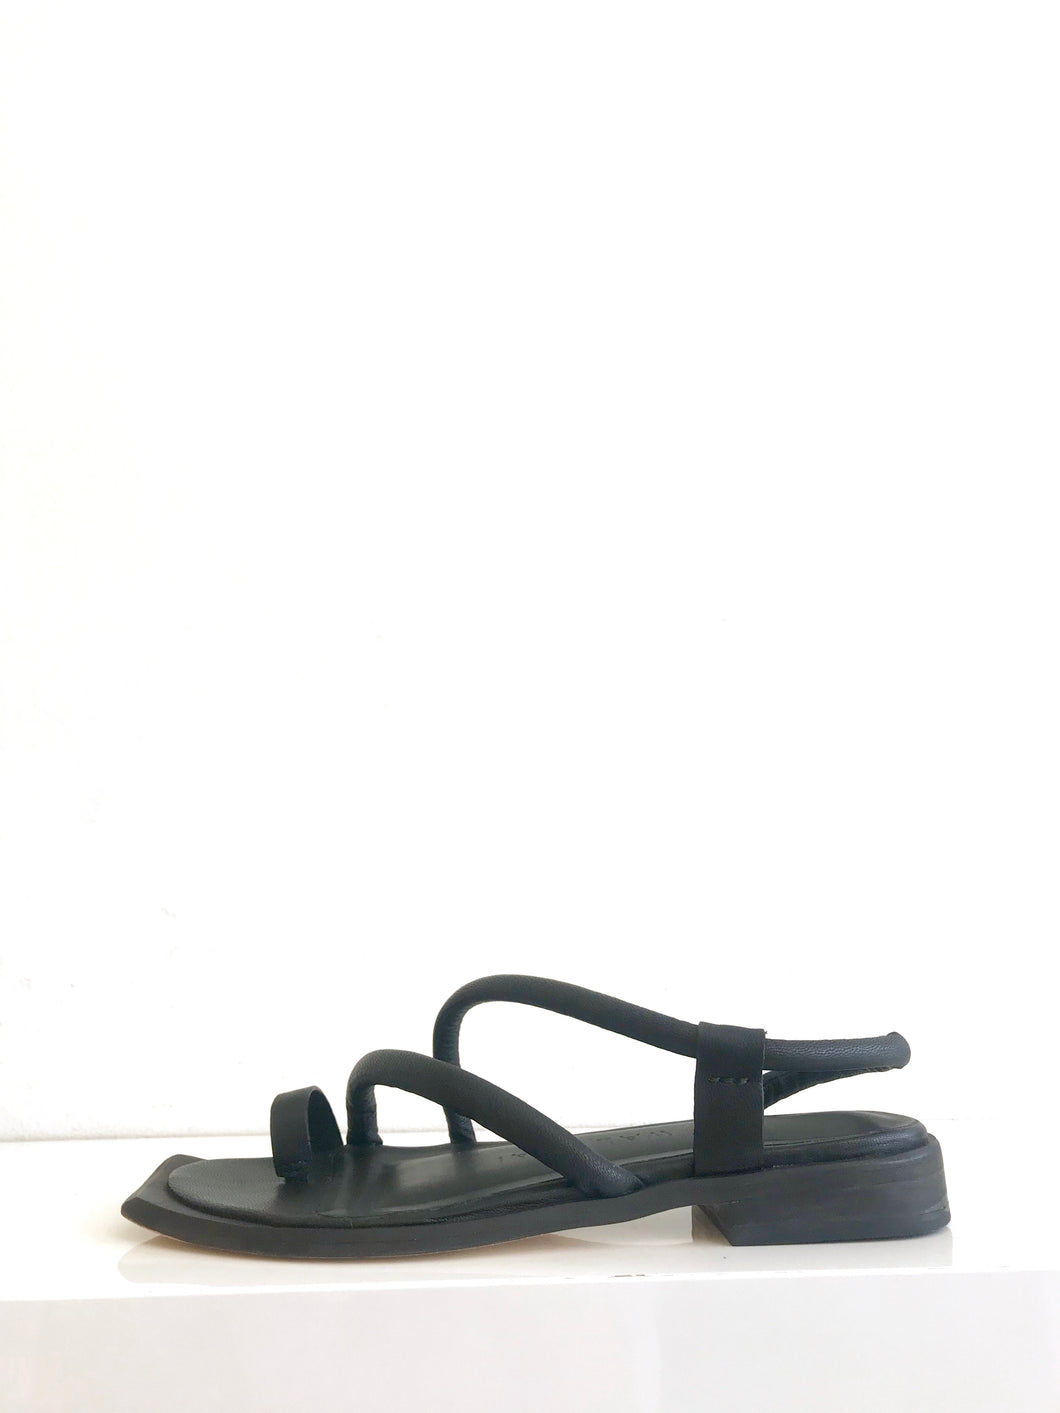 ROCCA Black Flat Slip-on Sandal